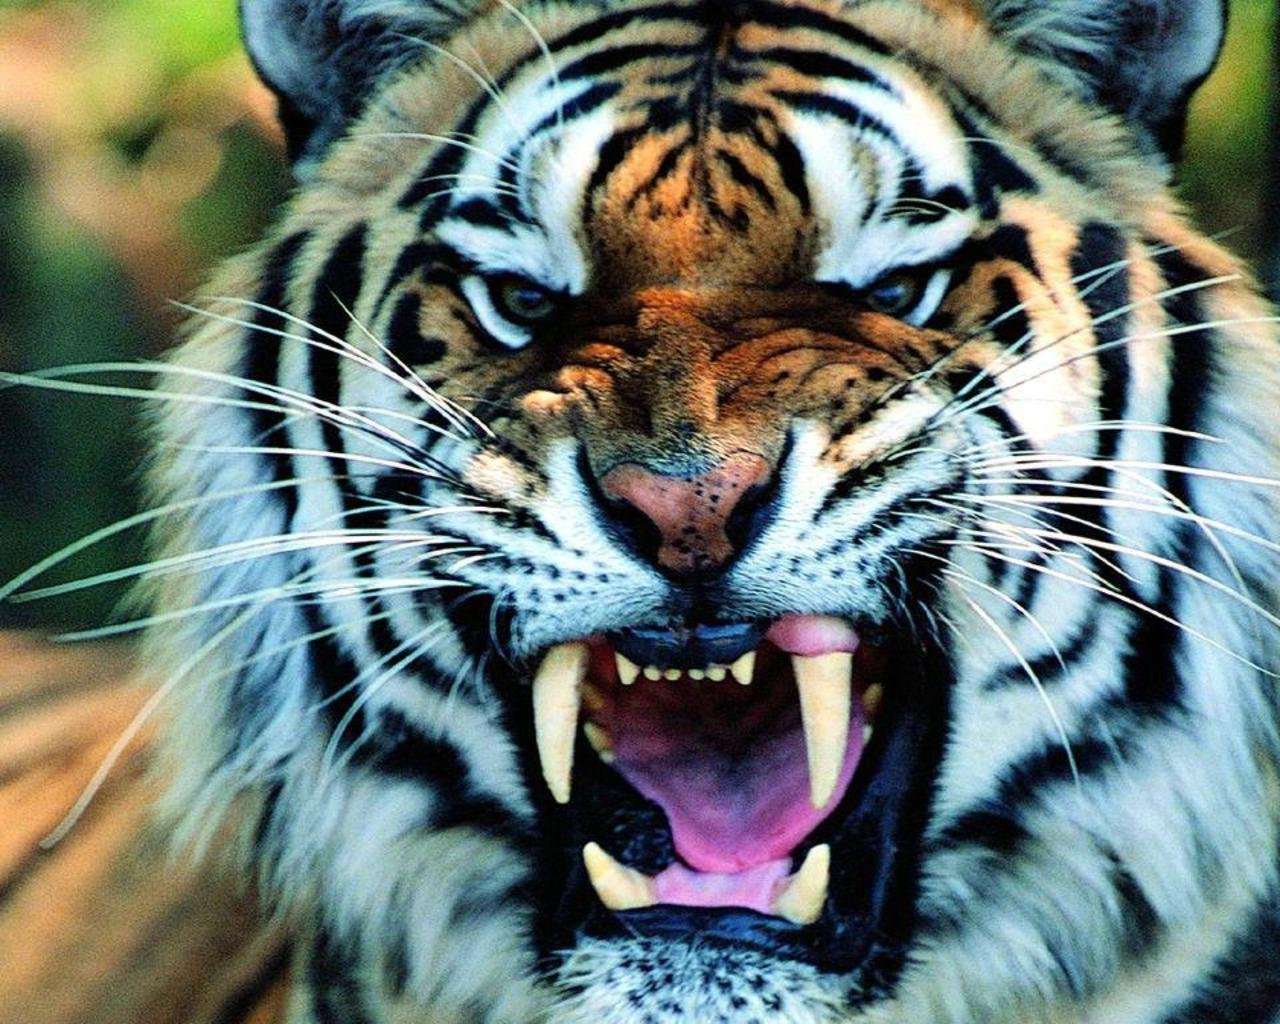 white tiger roaring face - animalcarecollege